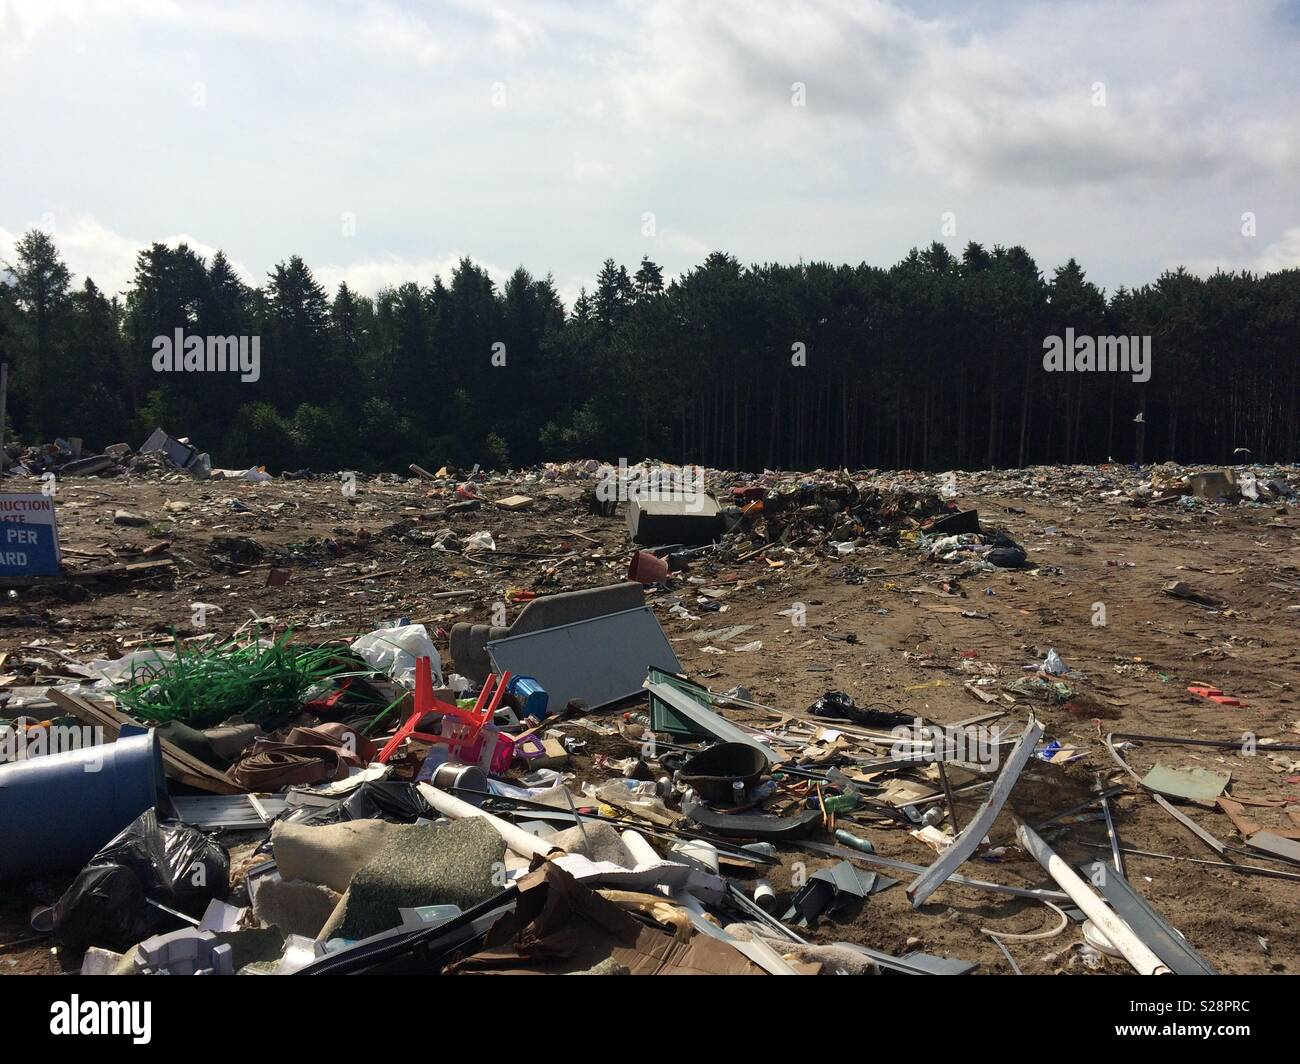 Landfill on a cloudy day - Stock Image